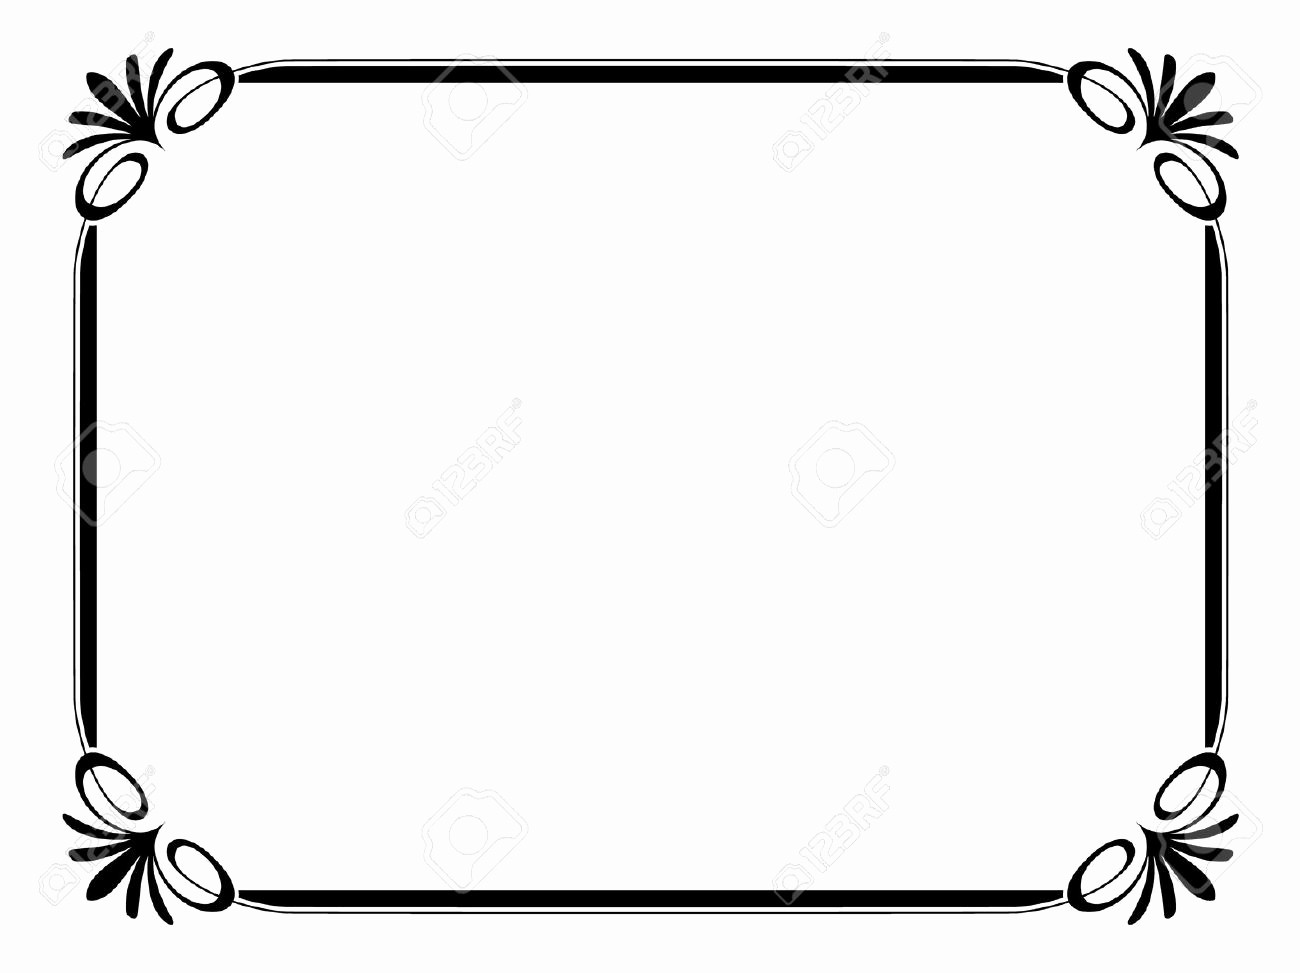 Certificate Border Design Free Download Beautiful Certificate Borders and Frames Clipart